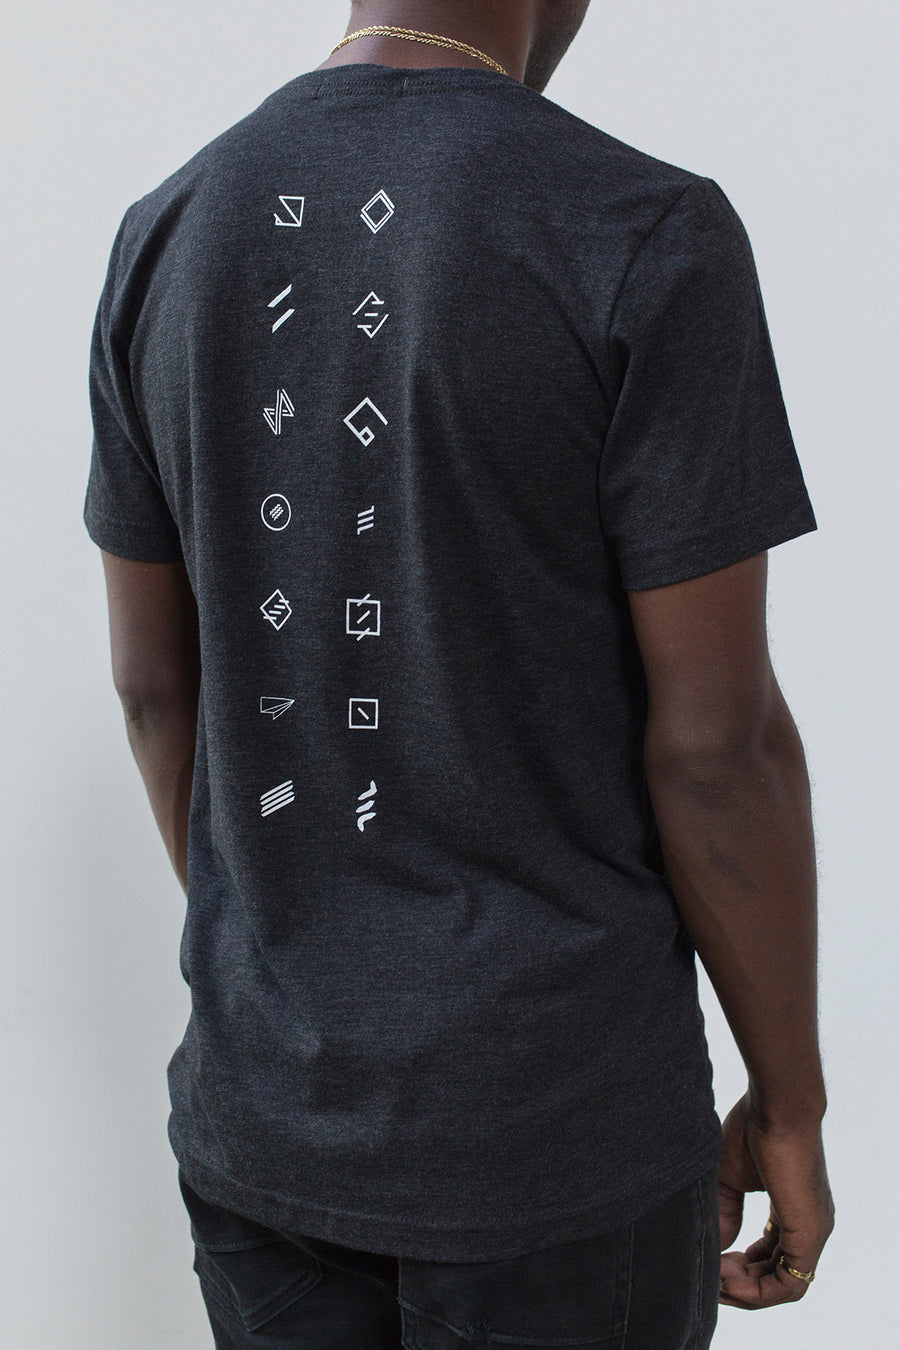 LANGUAGE tee | T-Shirt - SOVRN